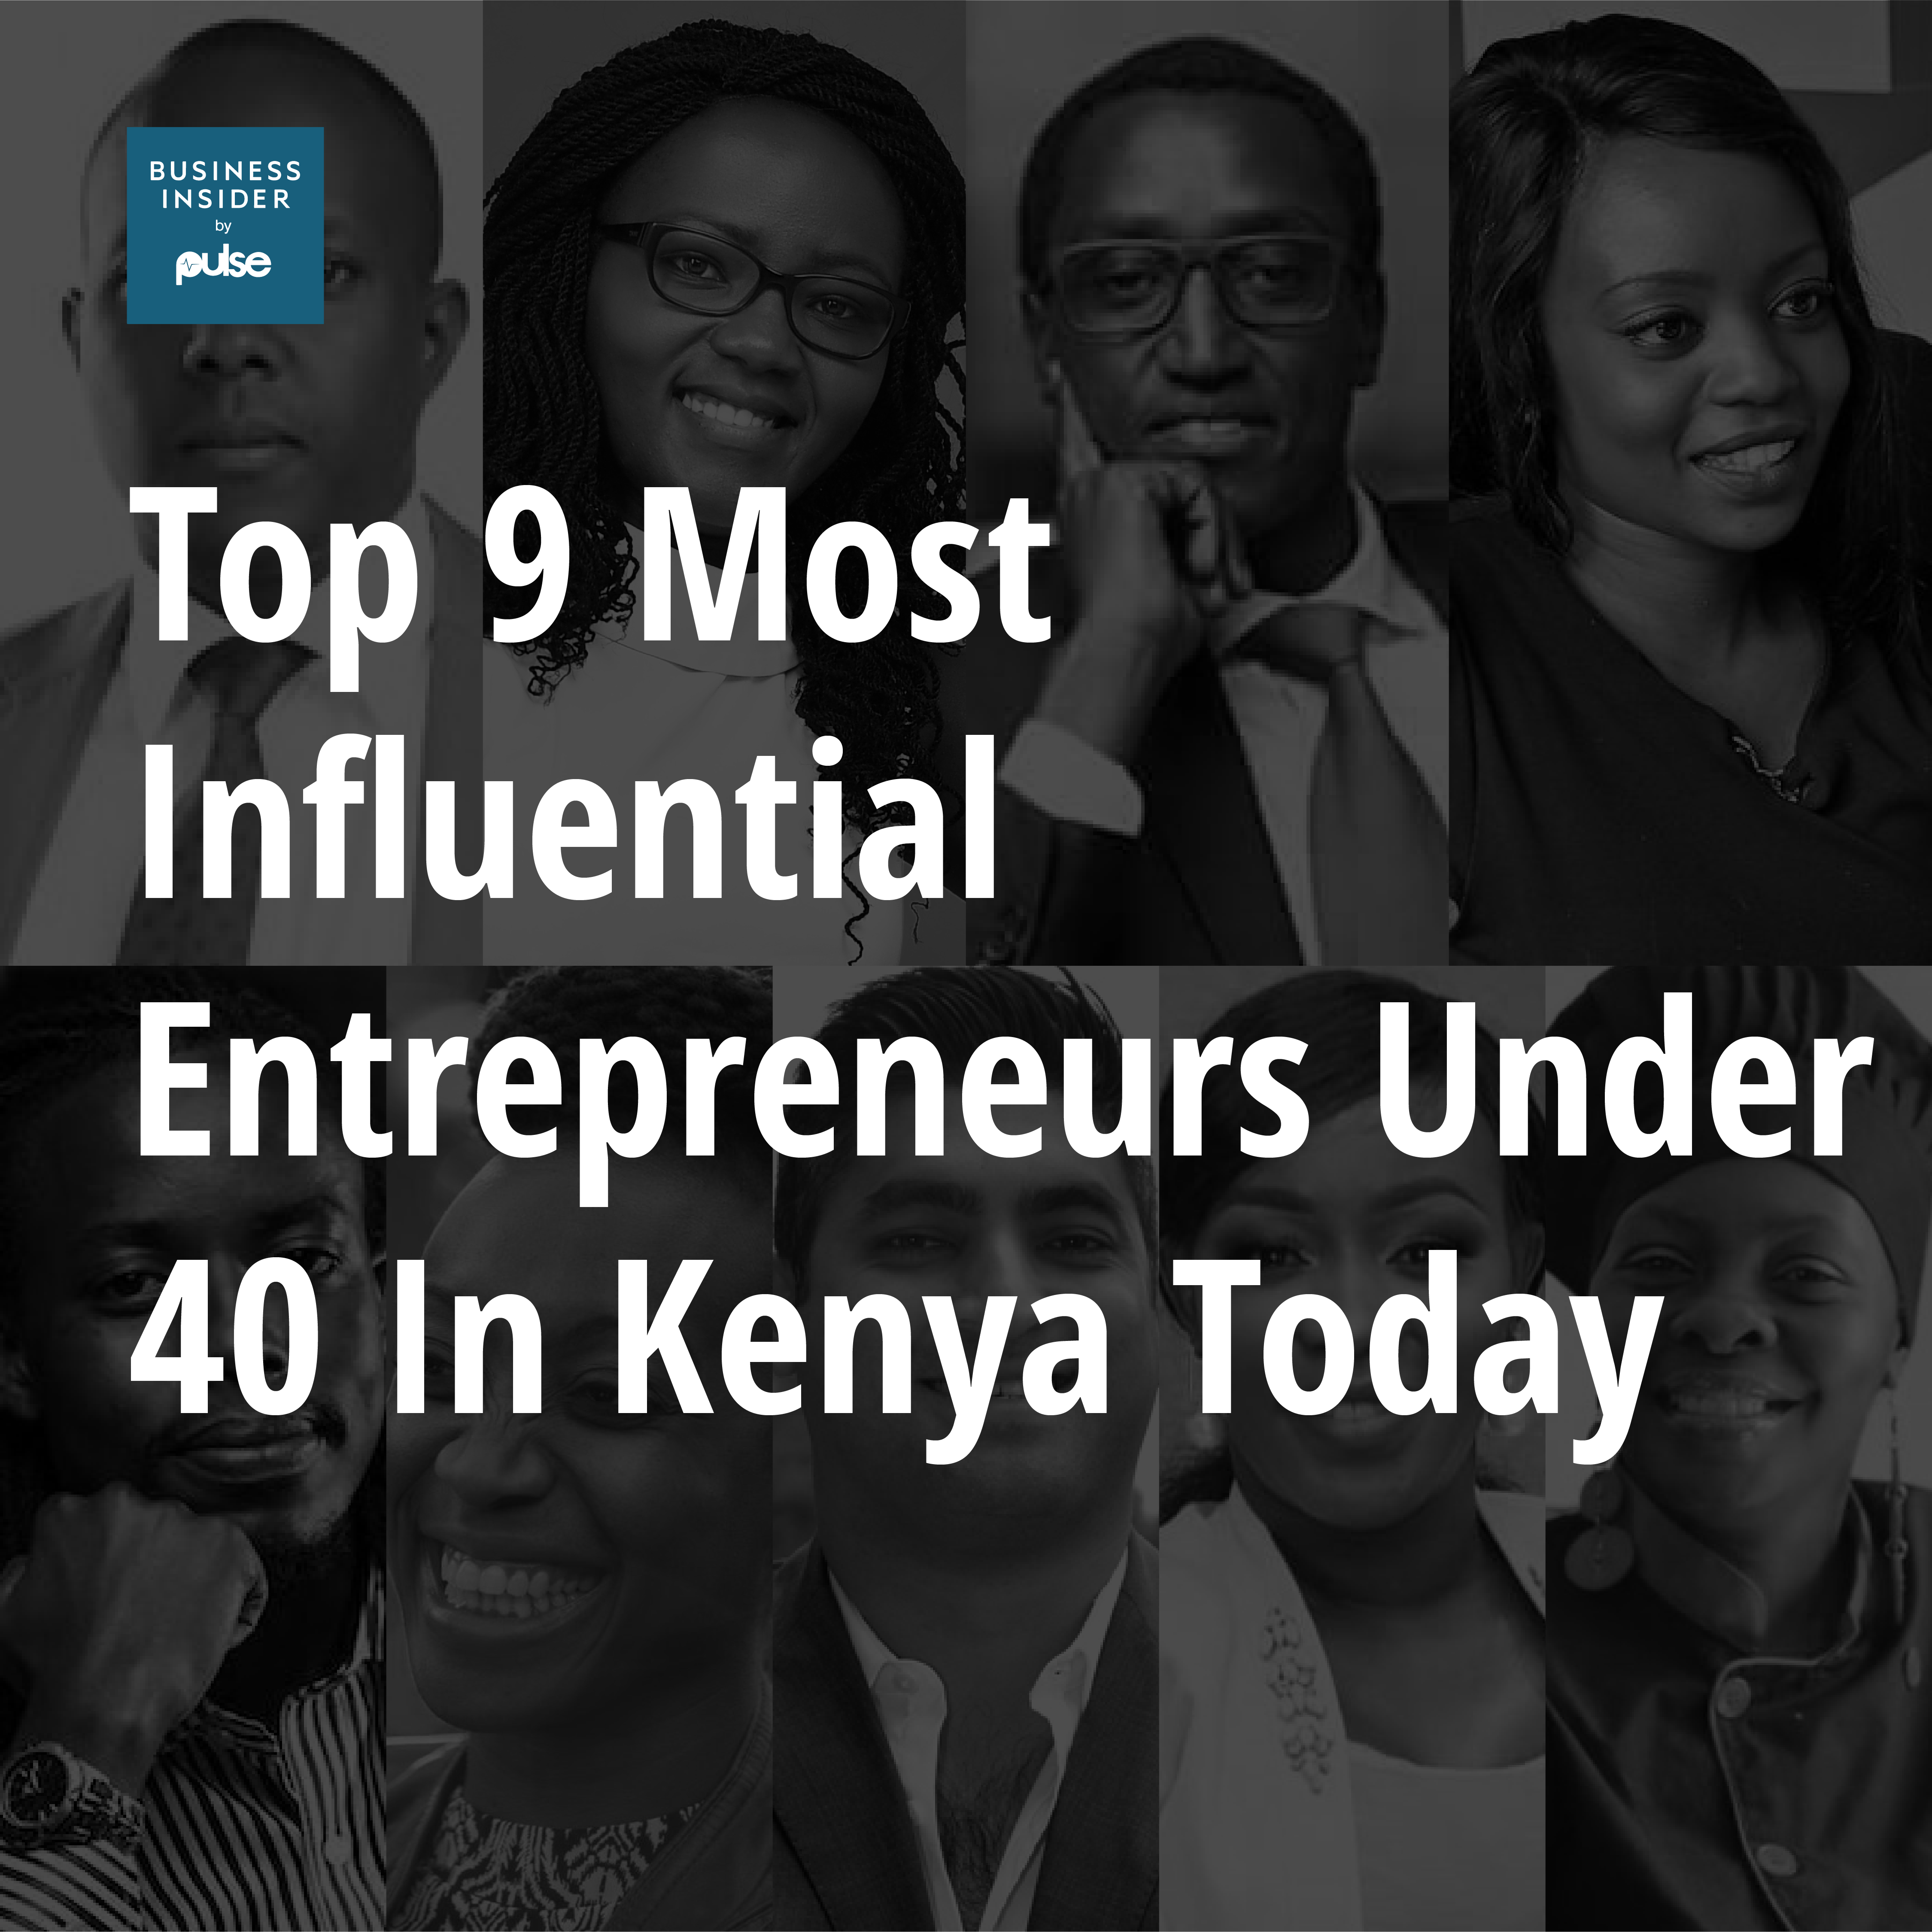 Top 9 most influential entrepreneurs under 40 in Kenya today - Pulse